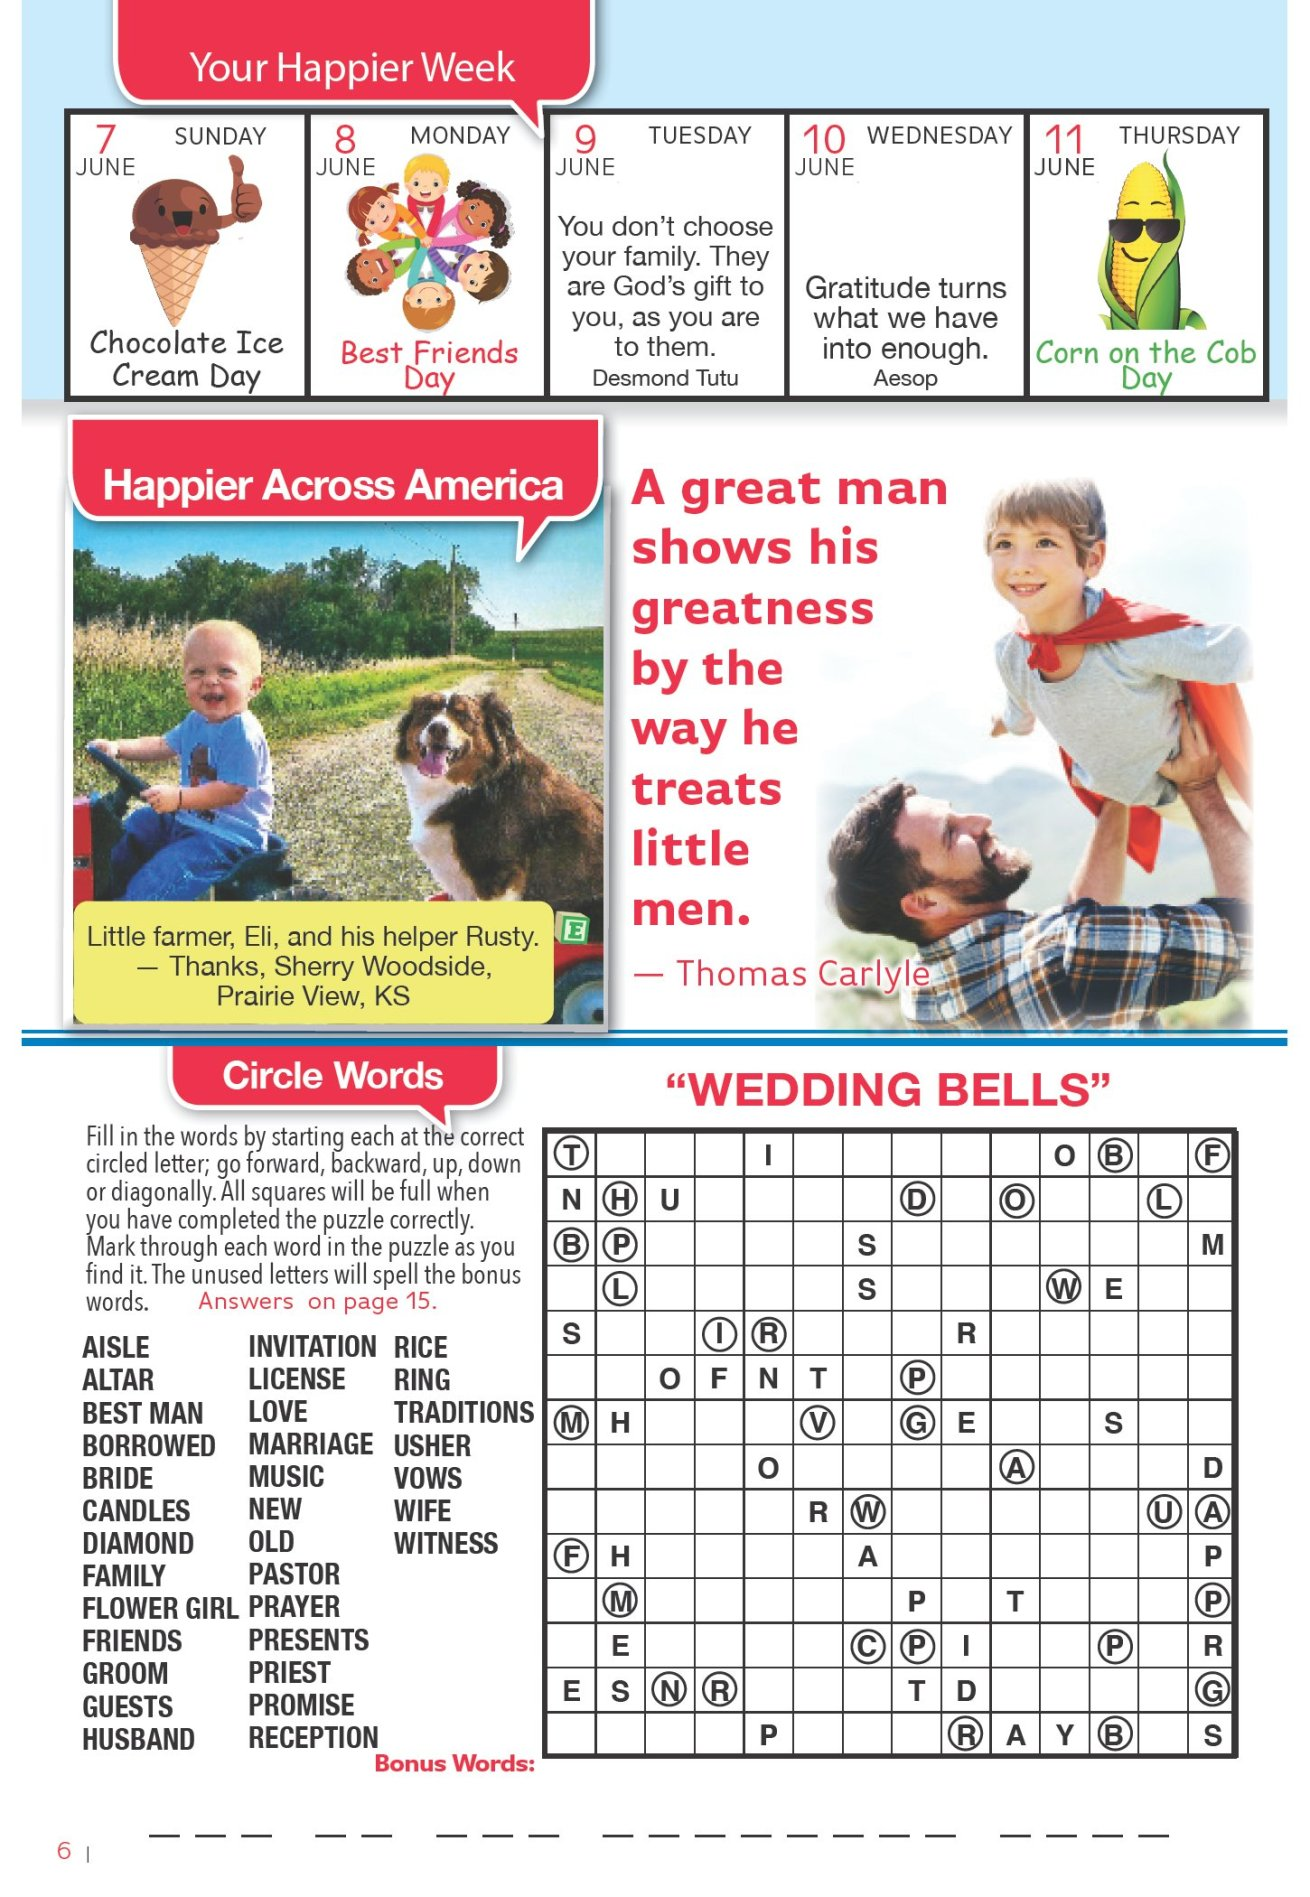 Crosswords, sudoku, circle words and more games